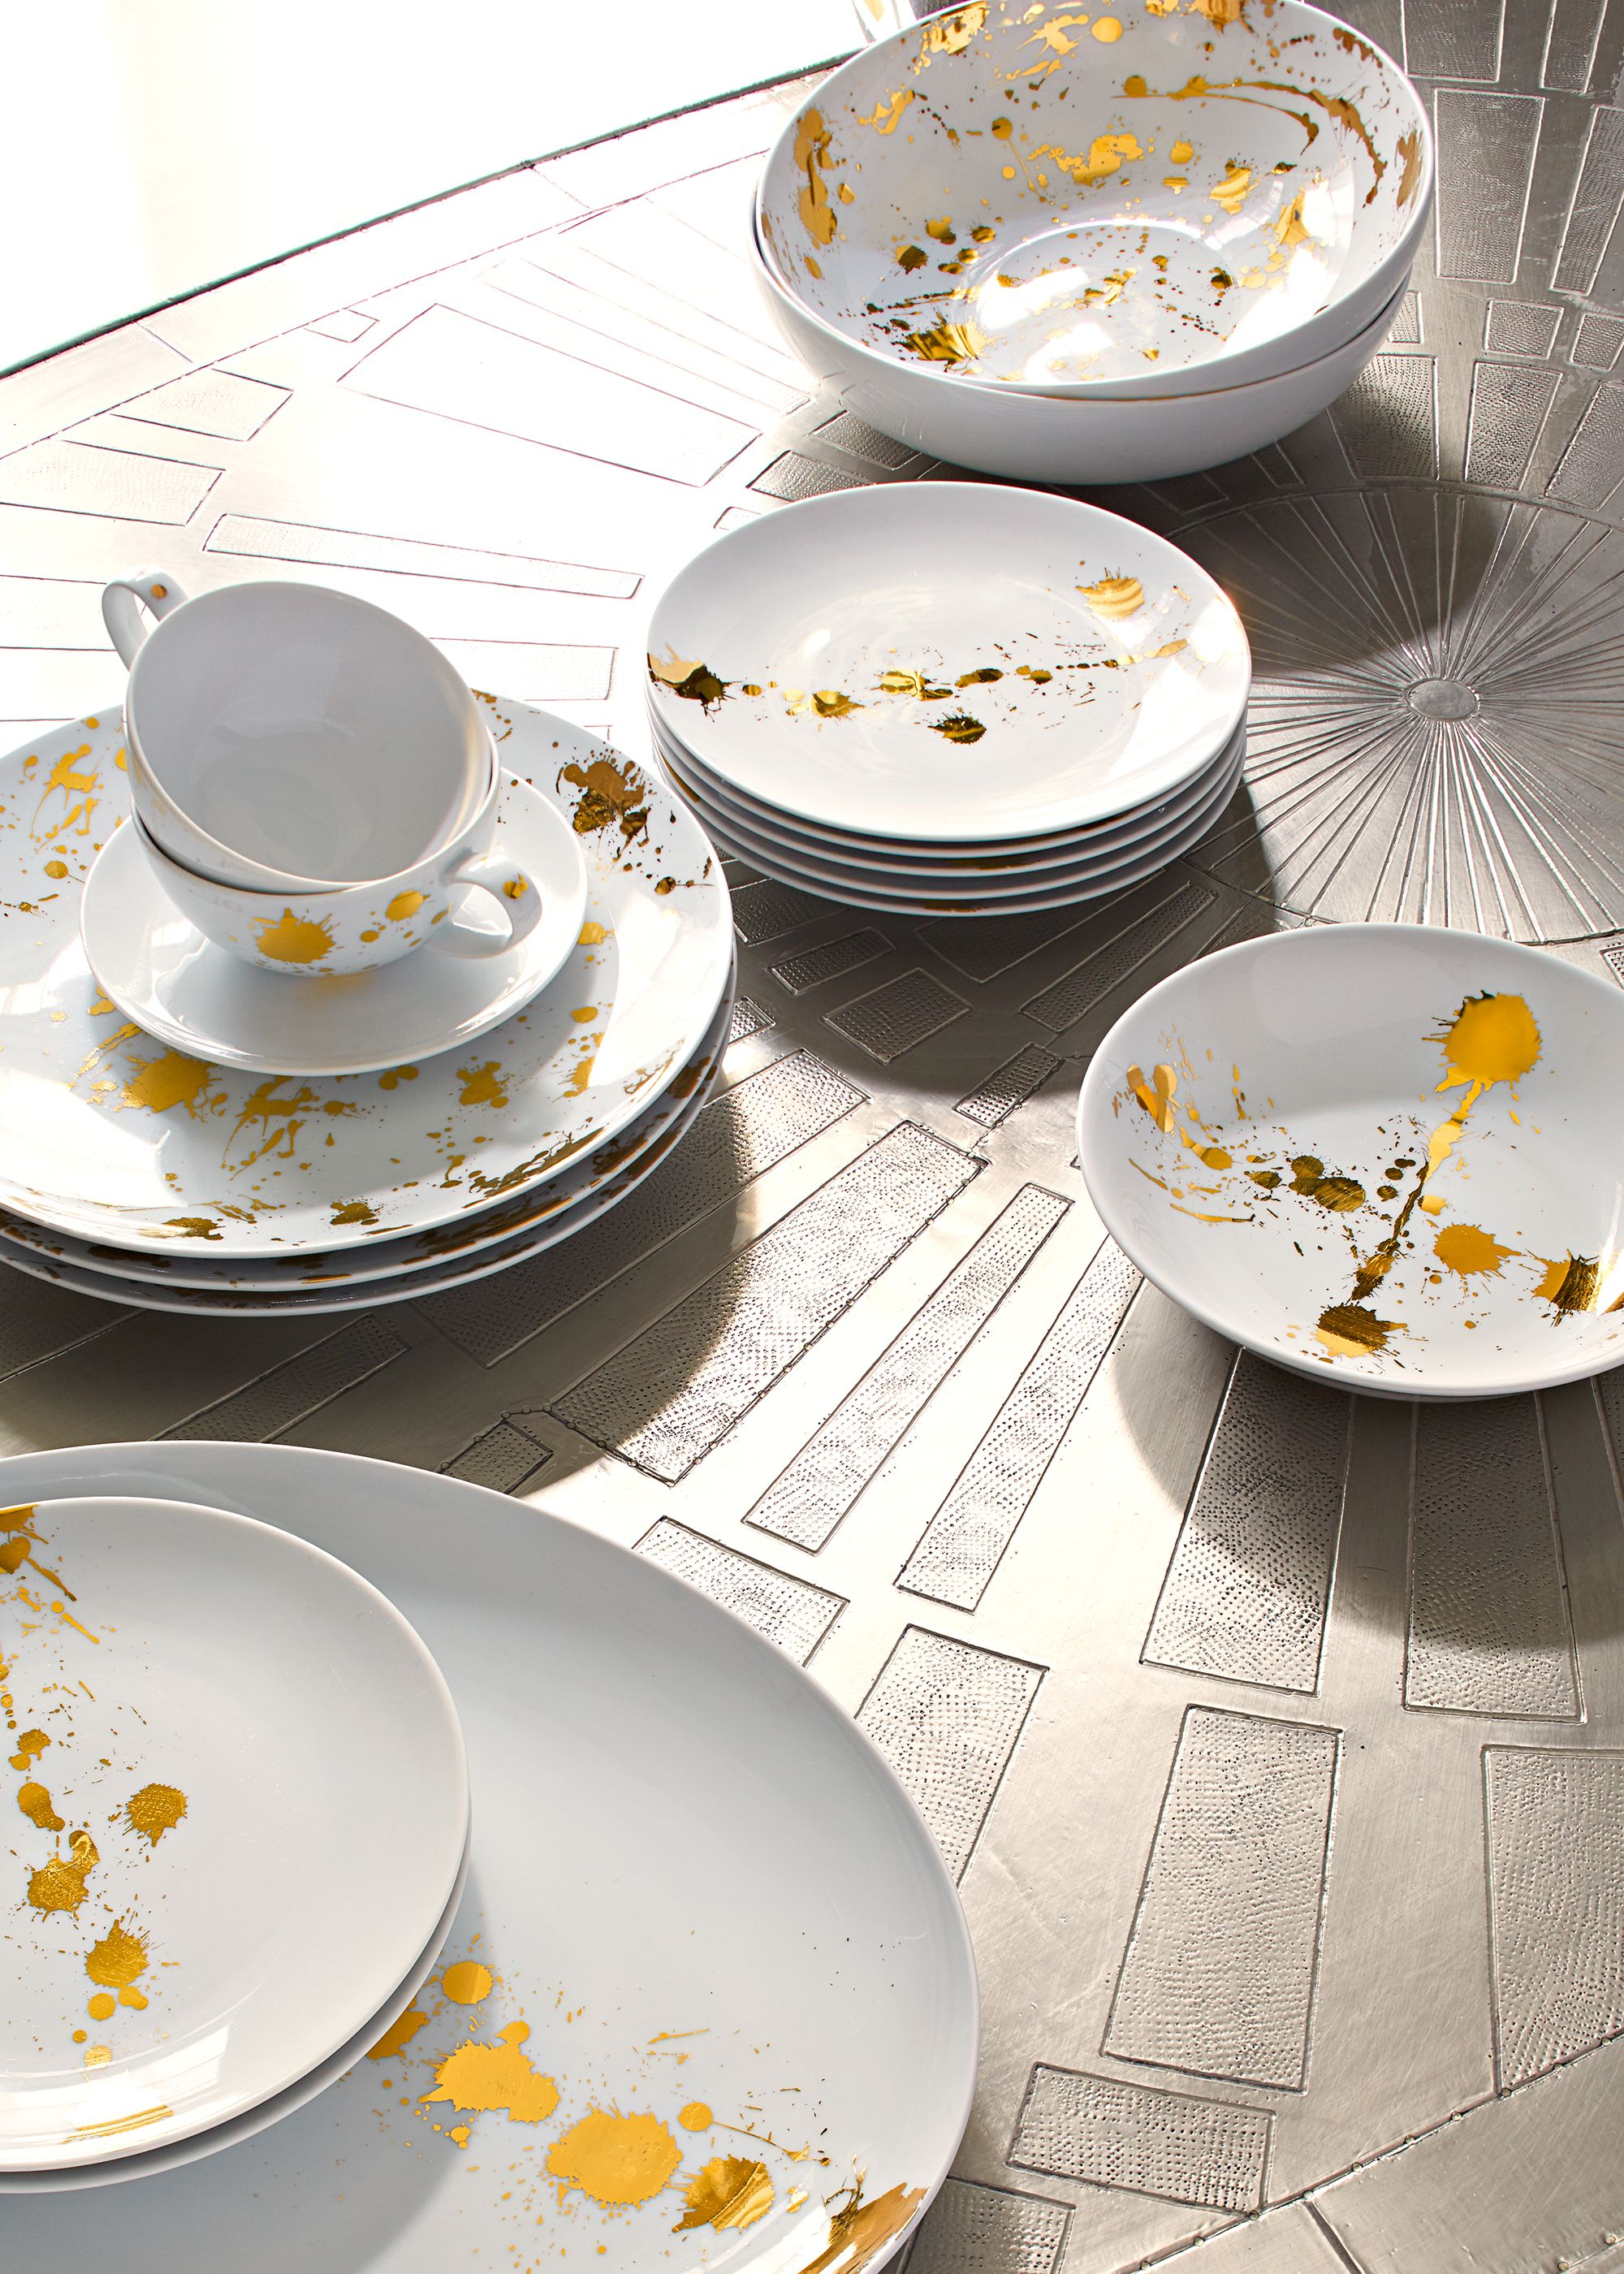 Jonathan Adler 1948 Dinnerware Your Dining Table Deserves Some Quiet Luxury With A Splash Of